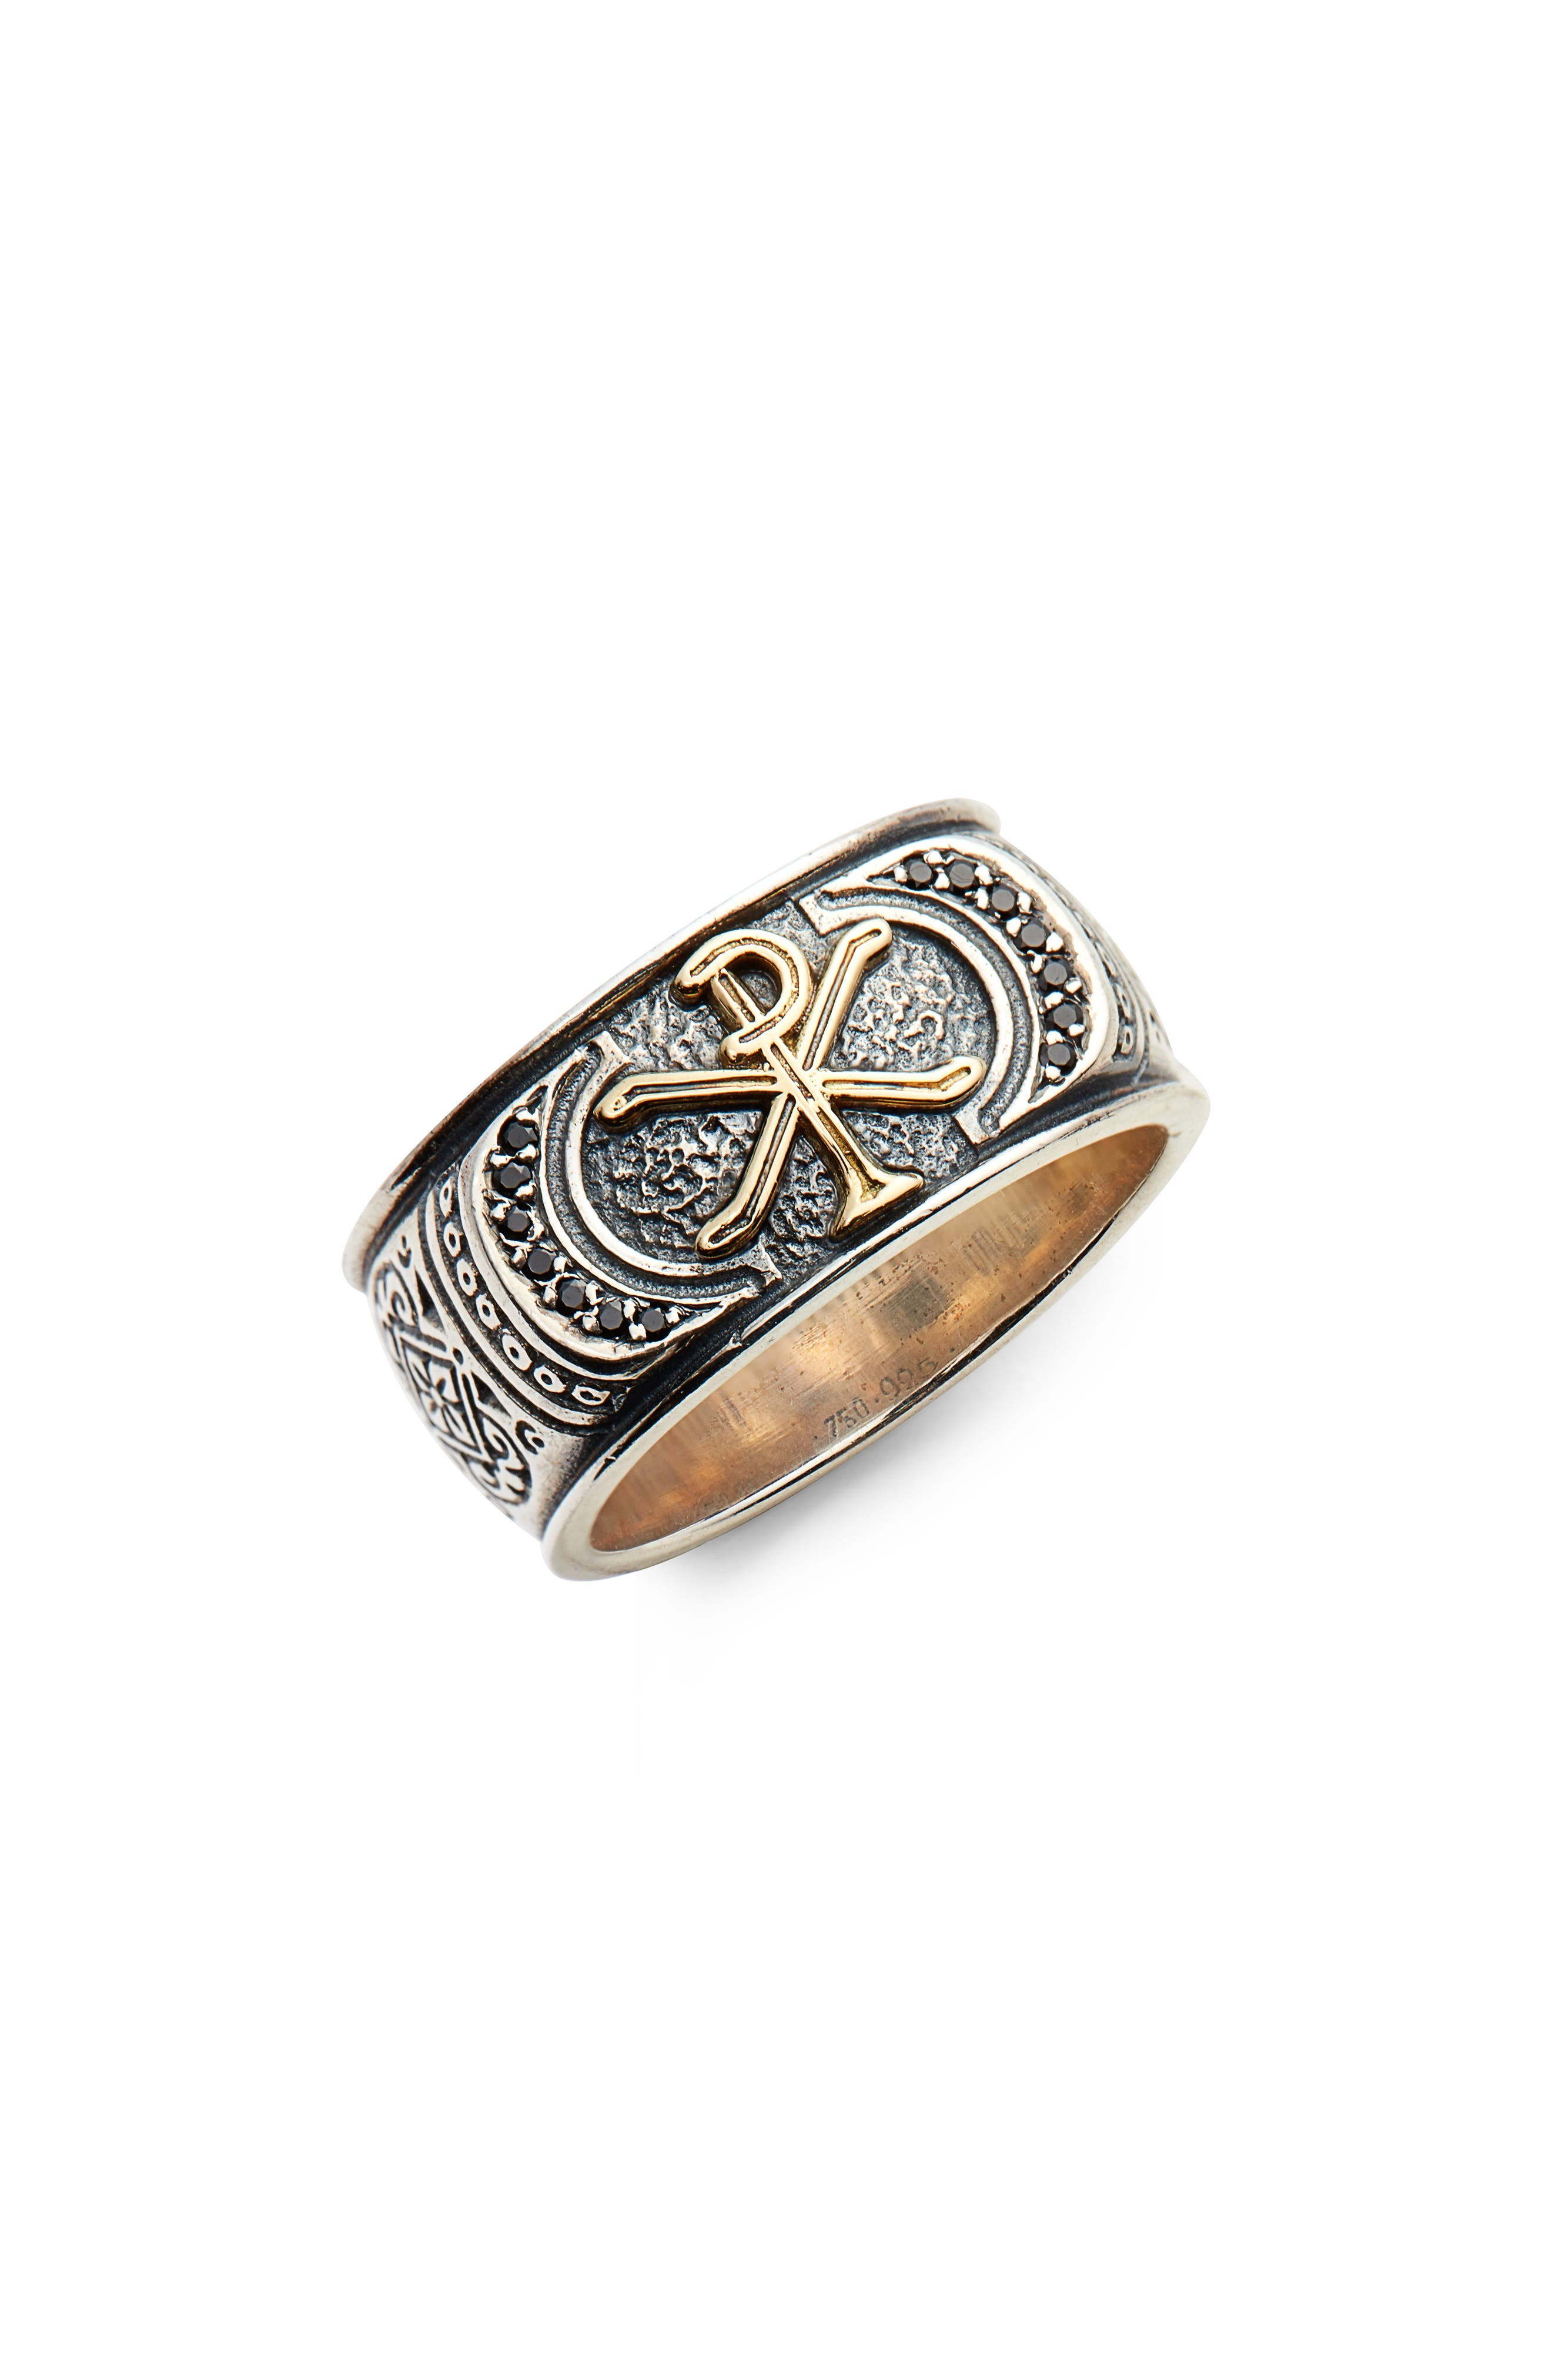 Stavros Spinel Signet Ring,                         Main,                         color, Silver/ Gold